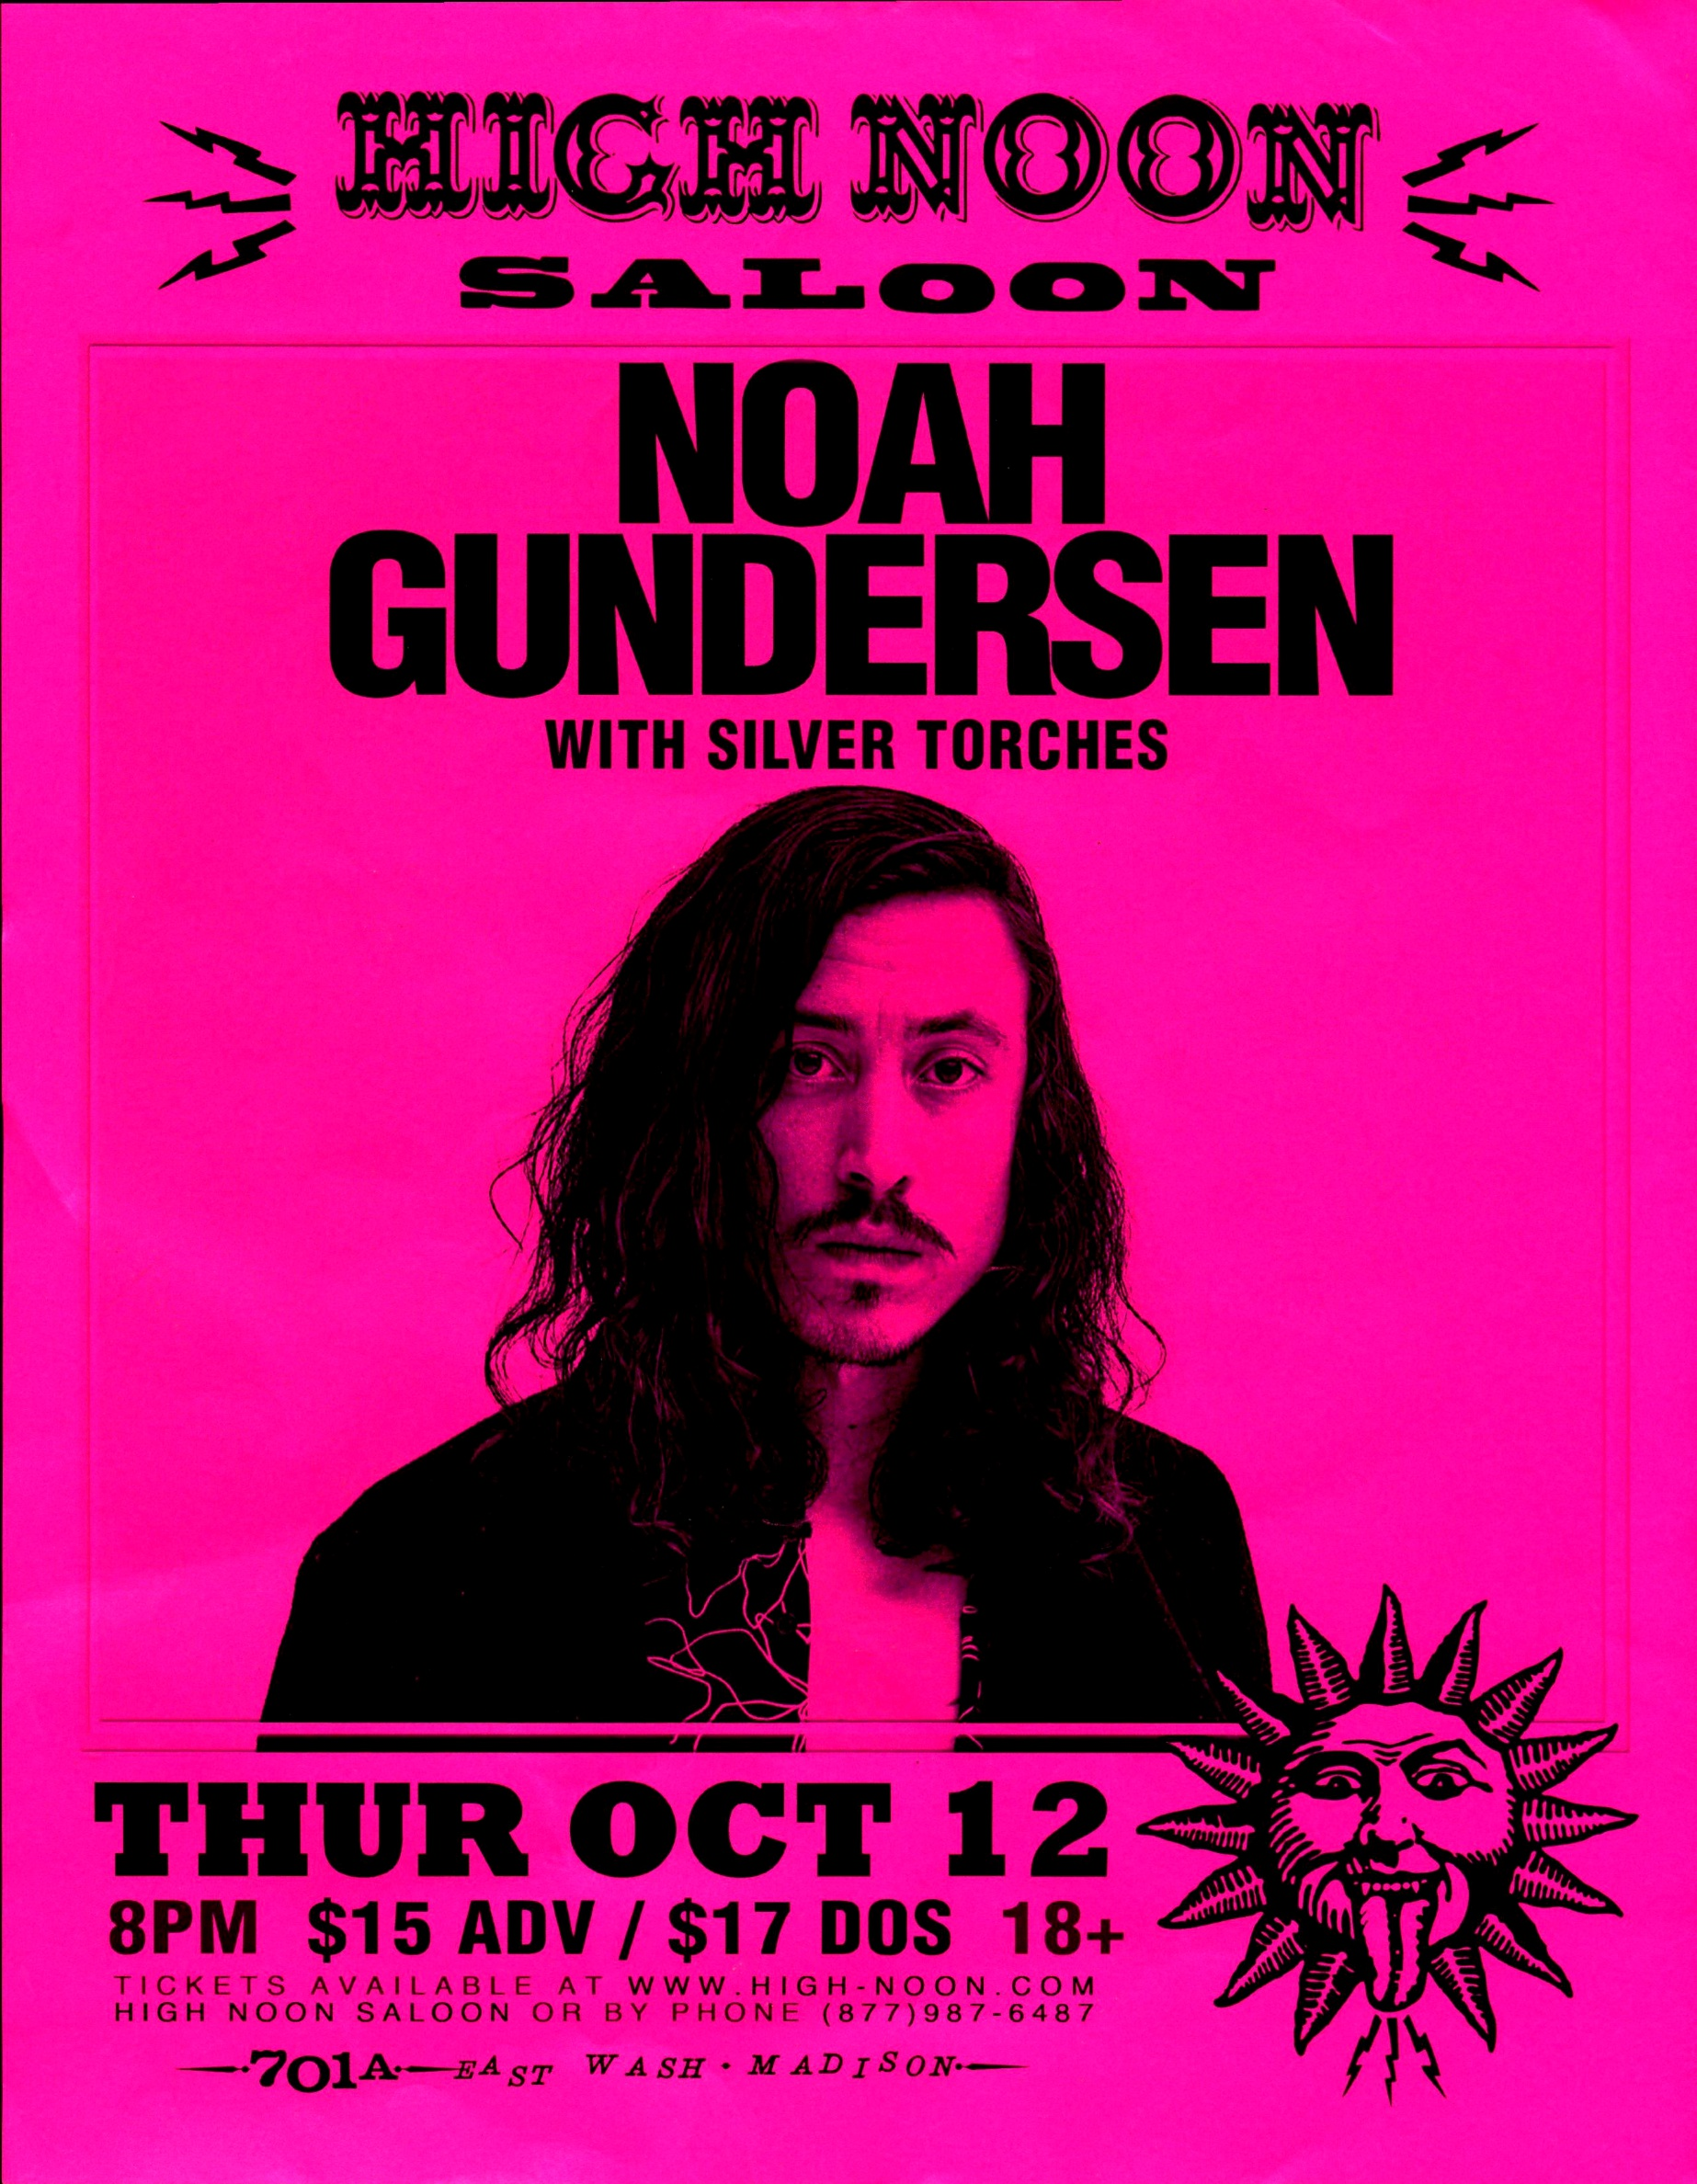 Noah Gundersen High Noon Saloon